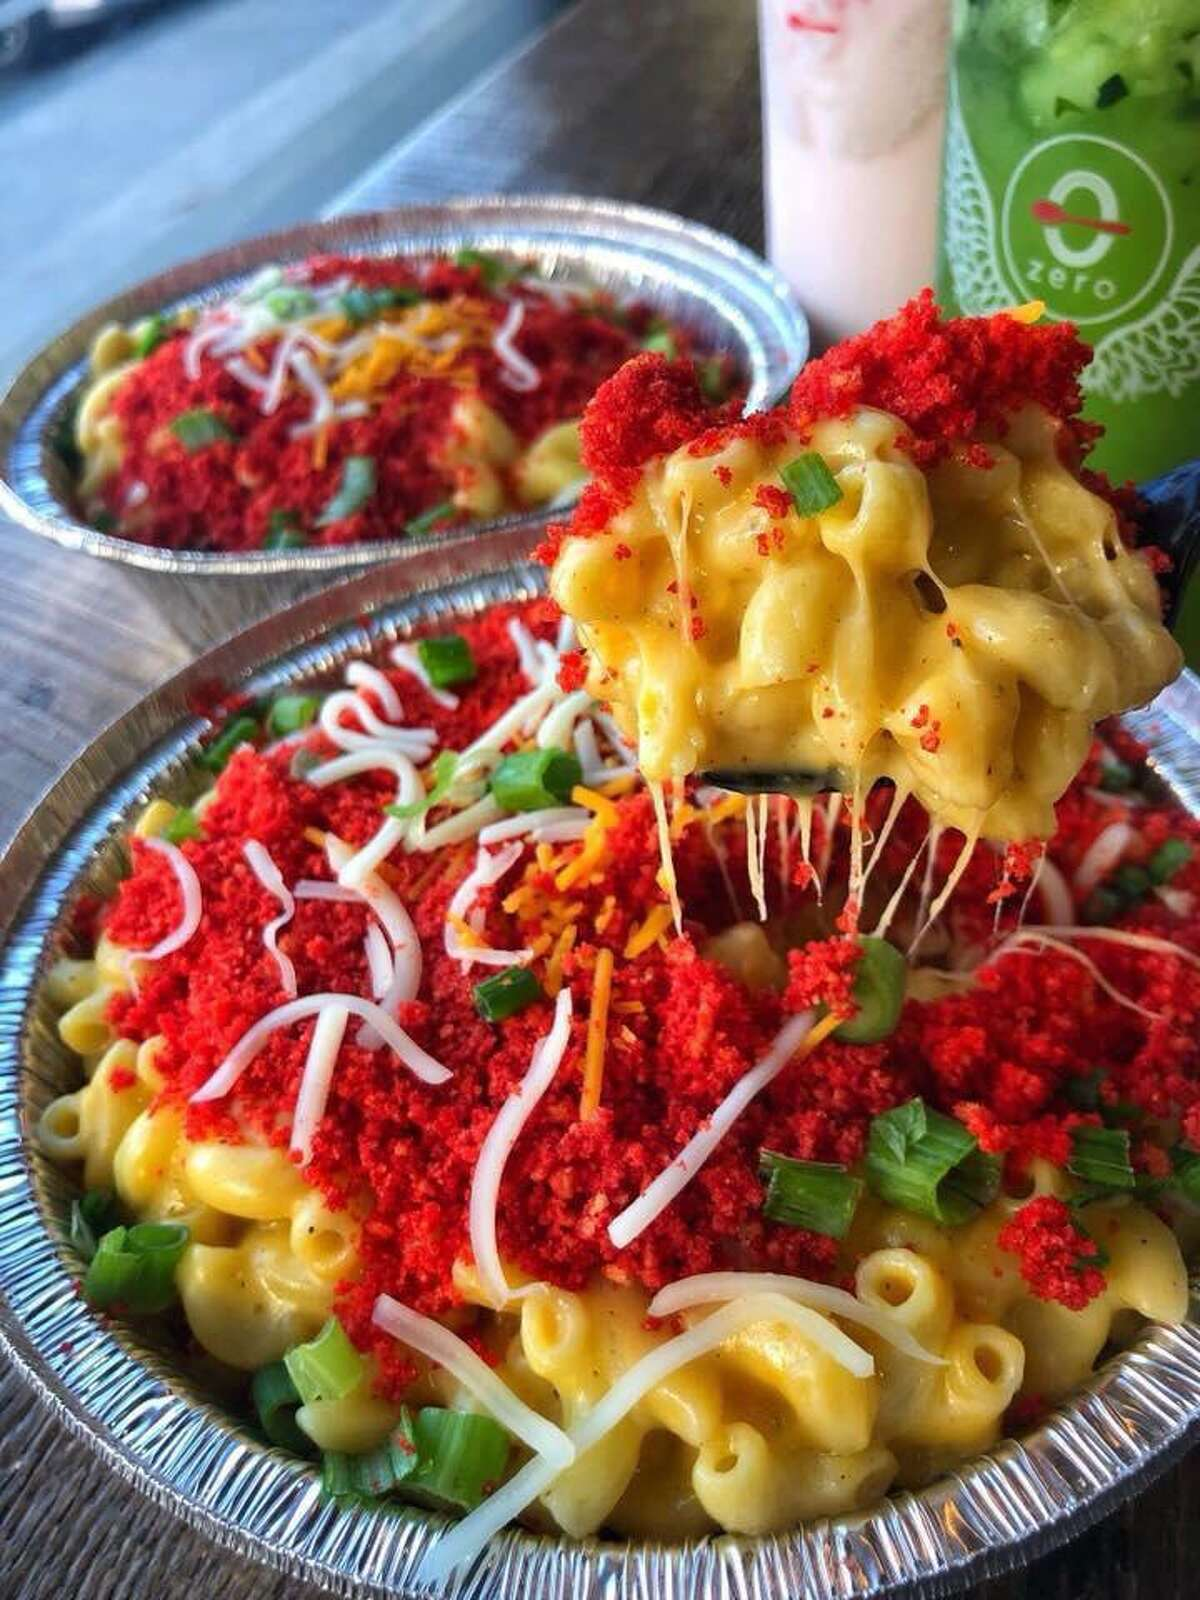 Mac N' Cheese Cheetos is made with elbow pasta, cheddar, mozzarella with XXTRA Flamin Hot Cheetos and green onions.